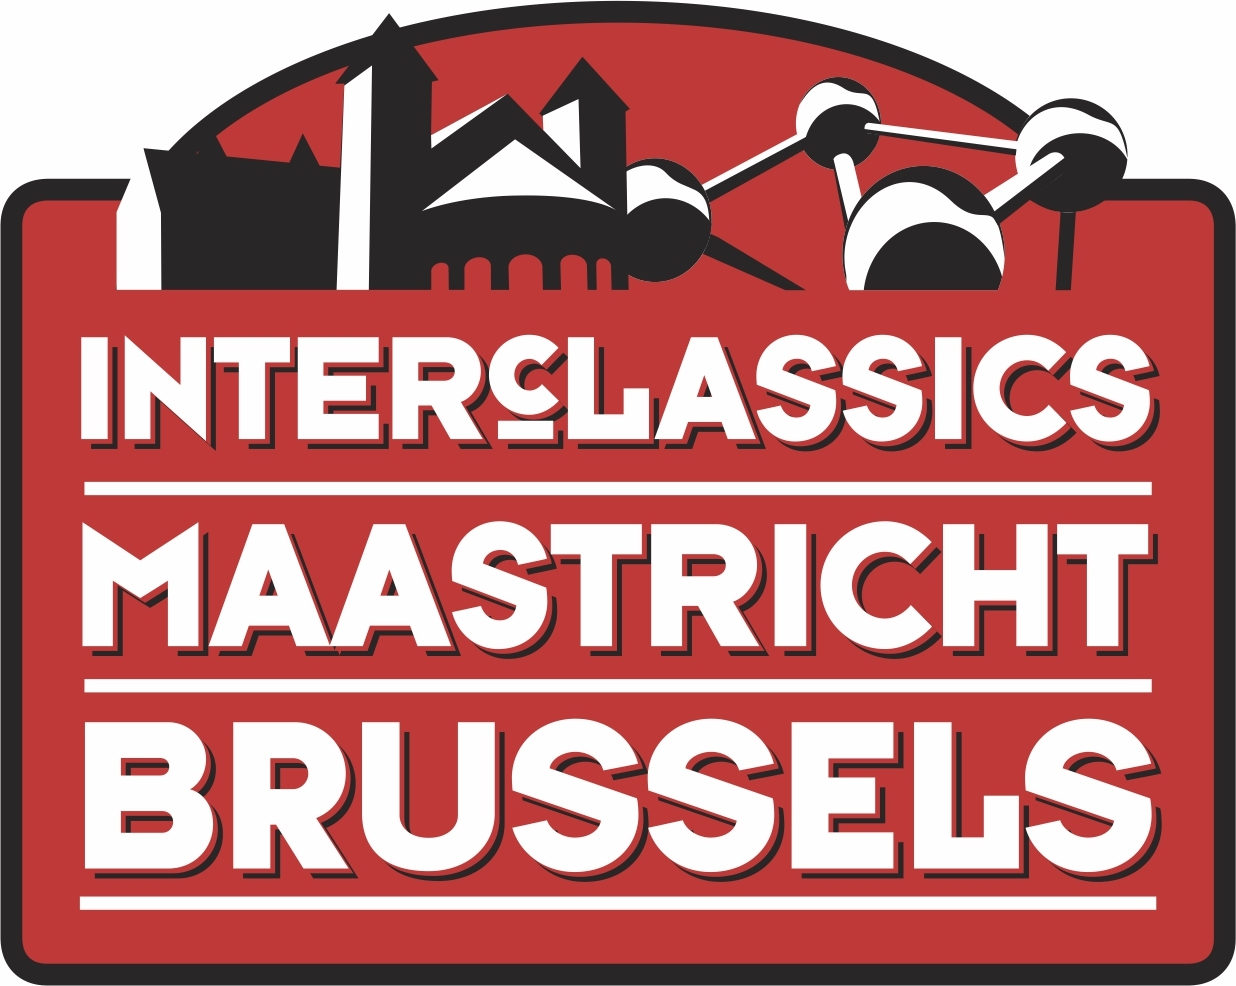 Interclassics Maastricht Brussels